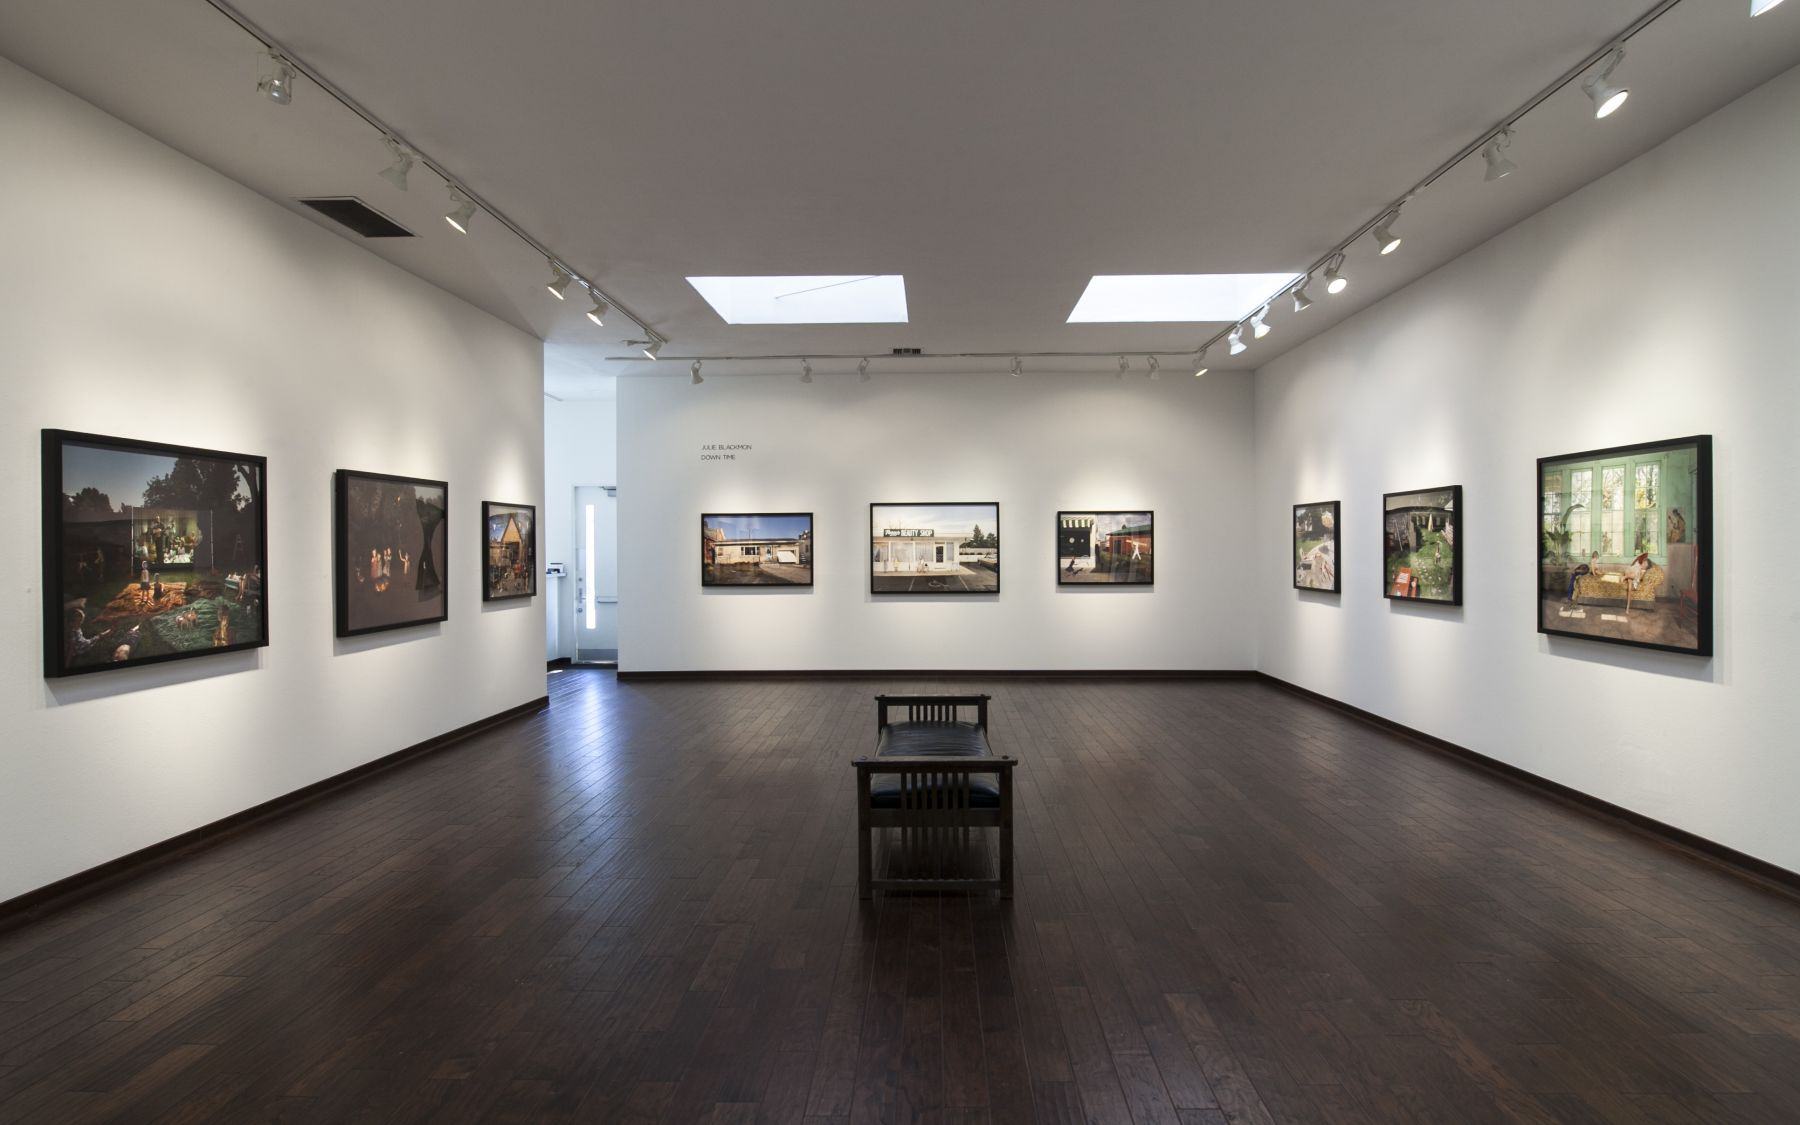 How to design an art gallery - Subscribe